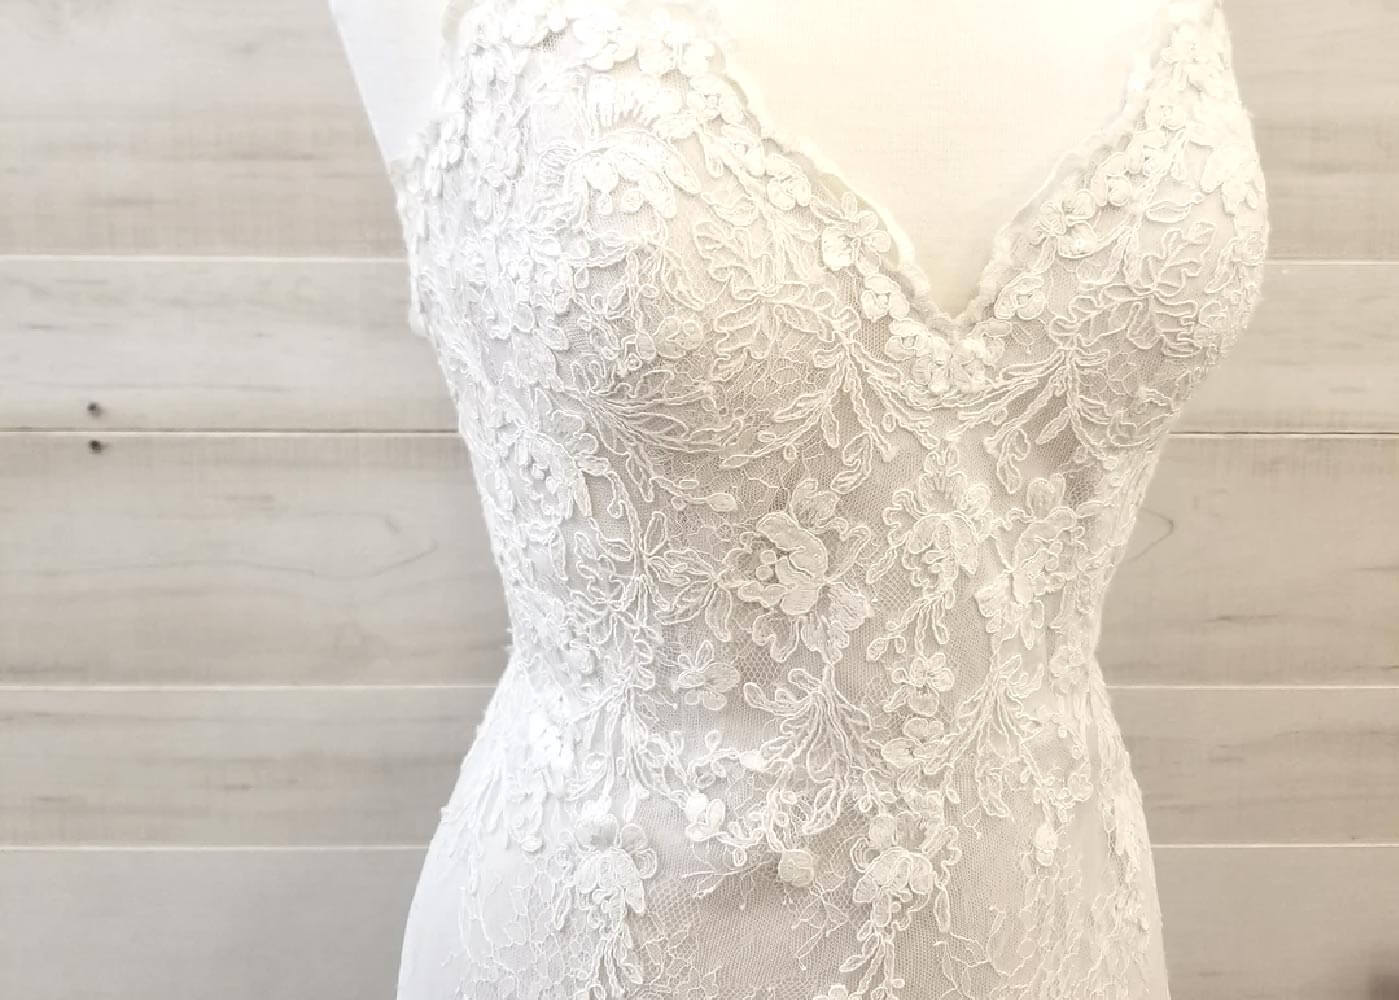 Photo of Flora's Bridal Sample Off-the-Rack Gown